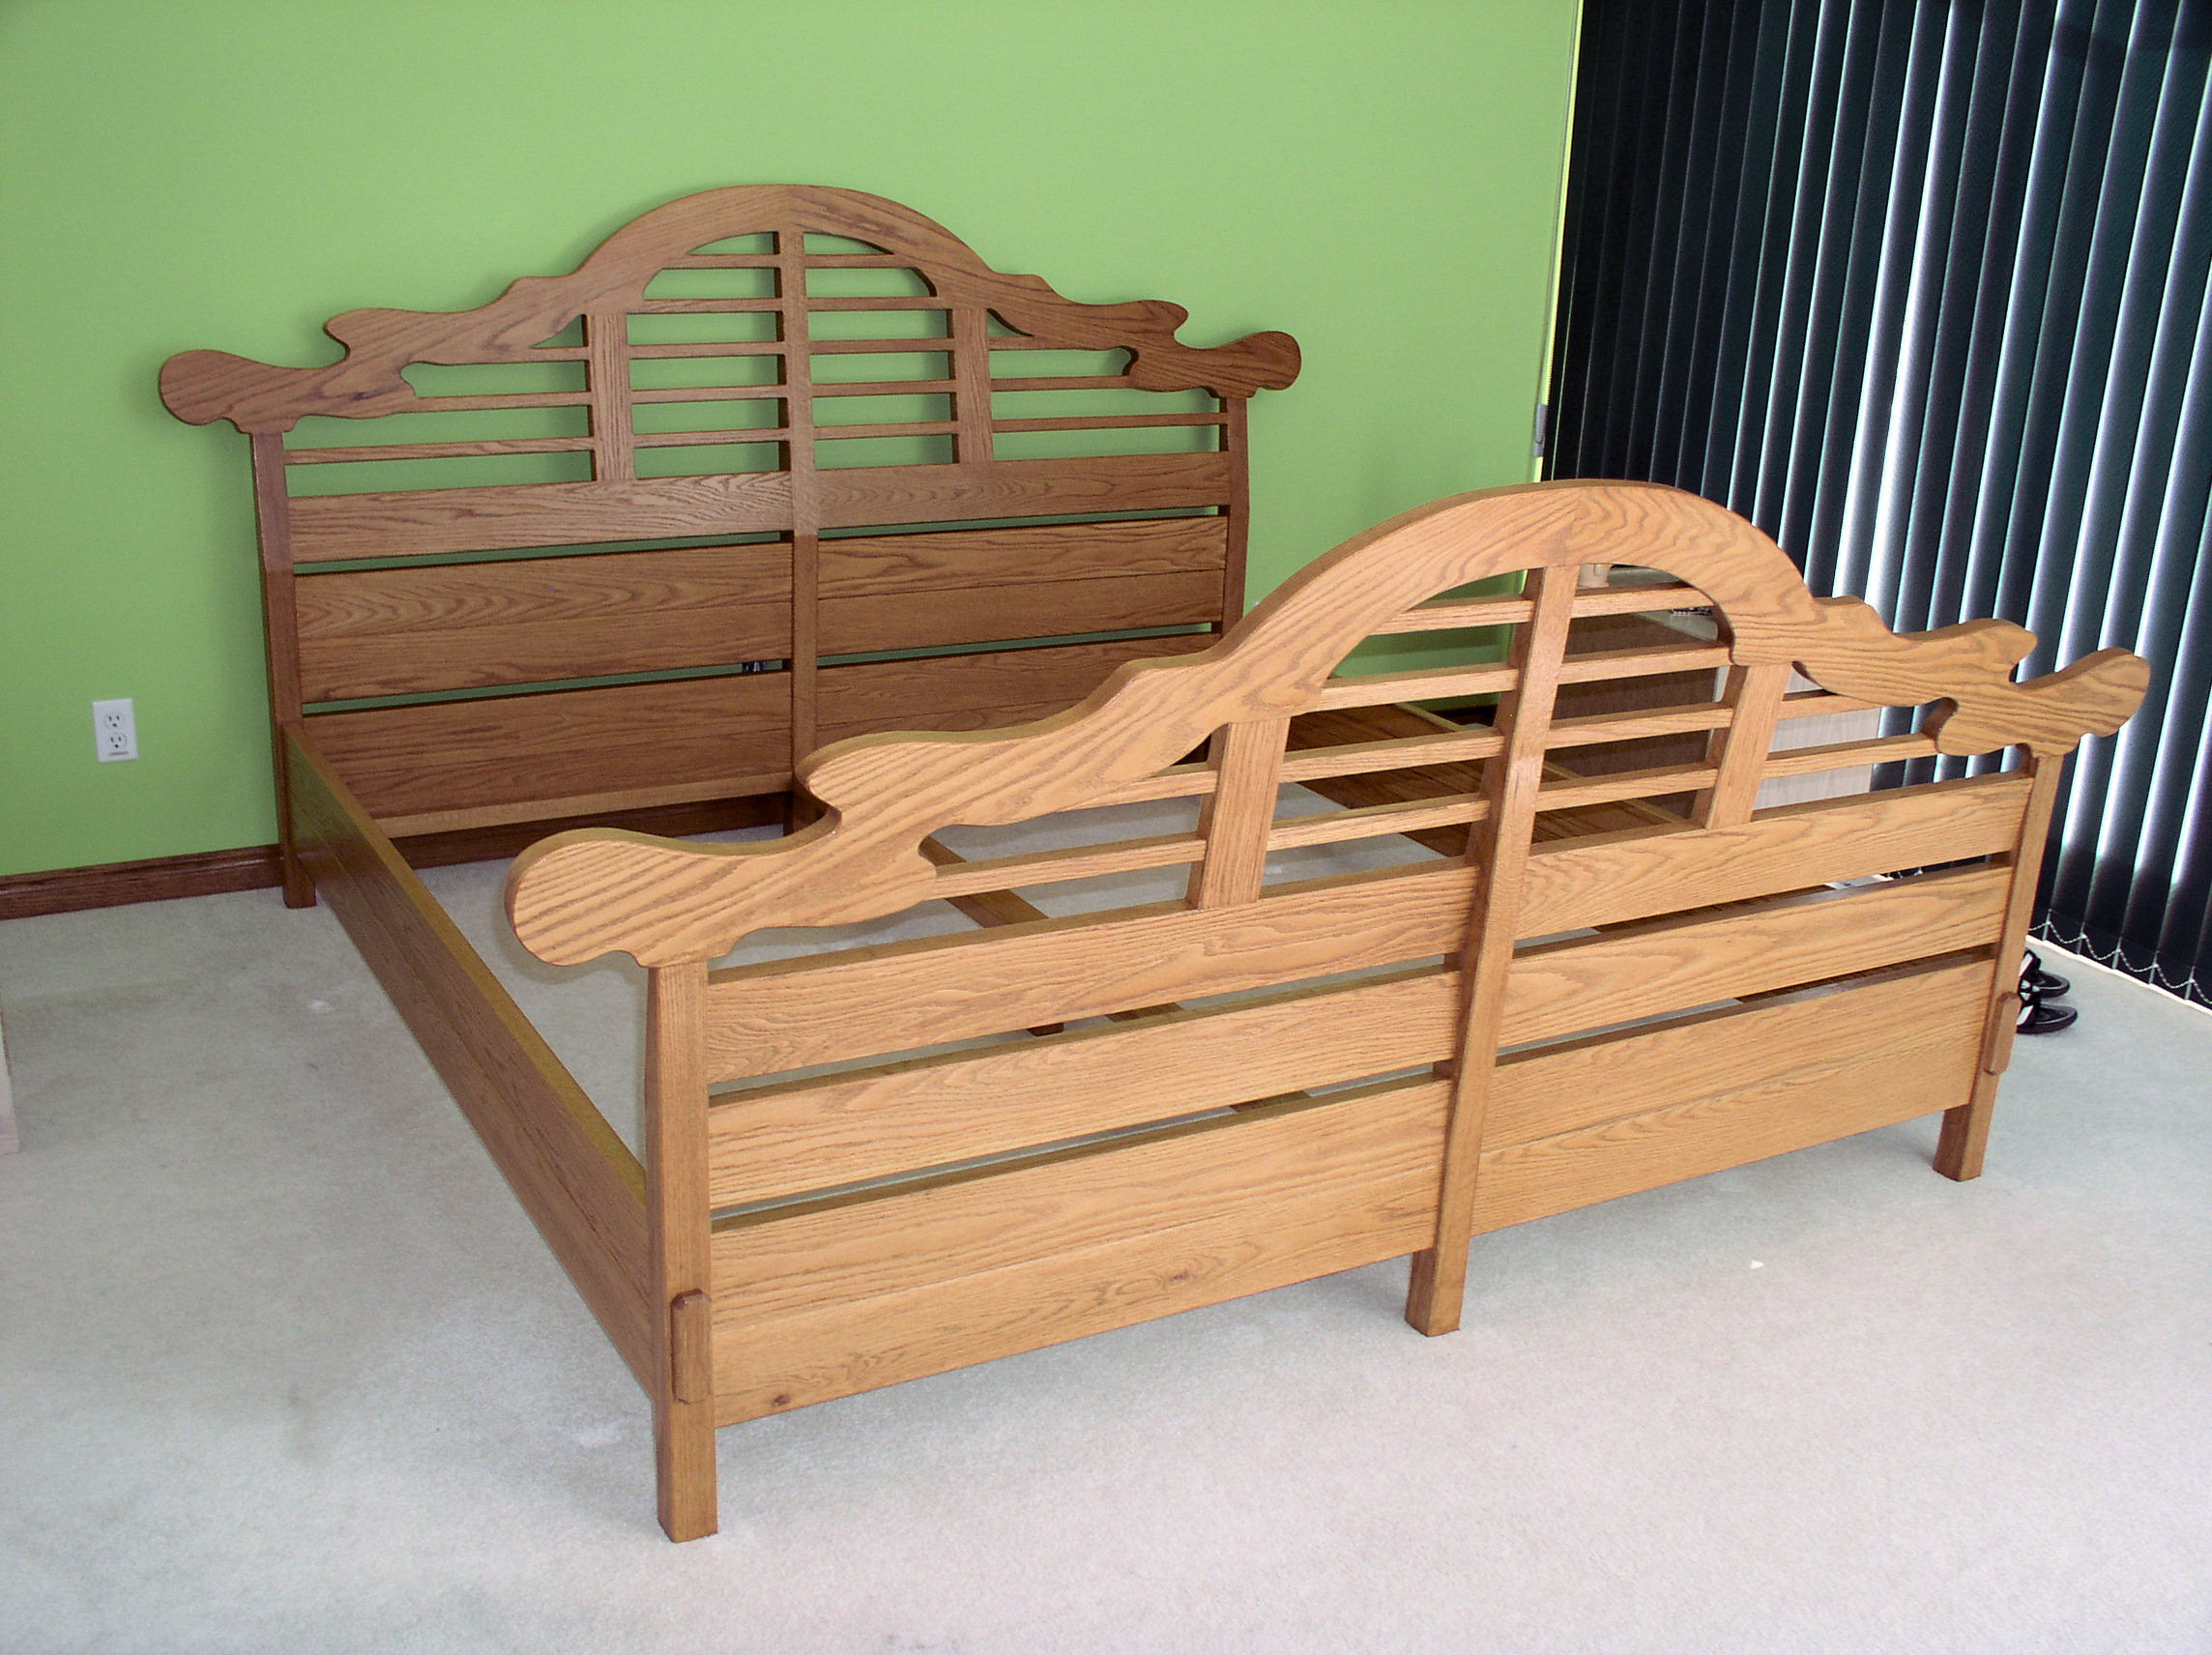 simple sized size rfa bedroom cgtrader king free models interior bed model